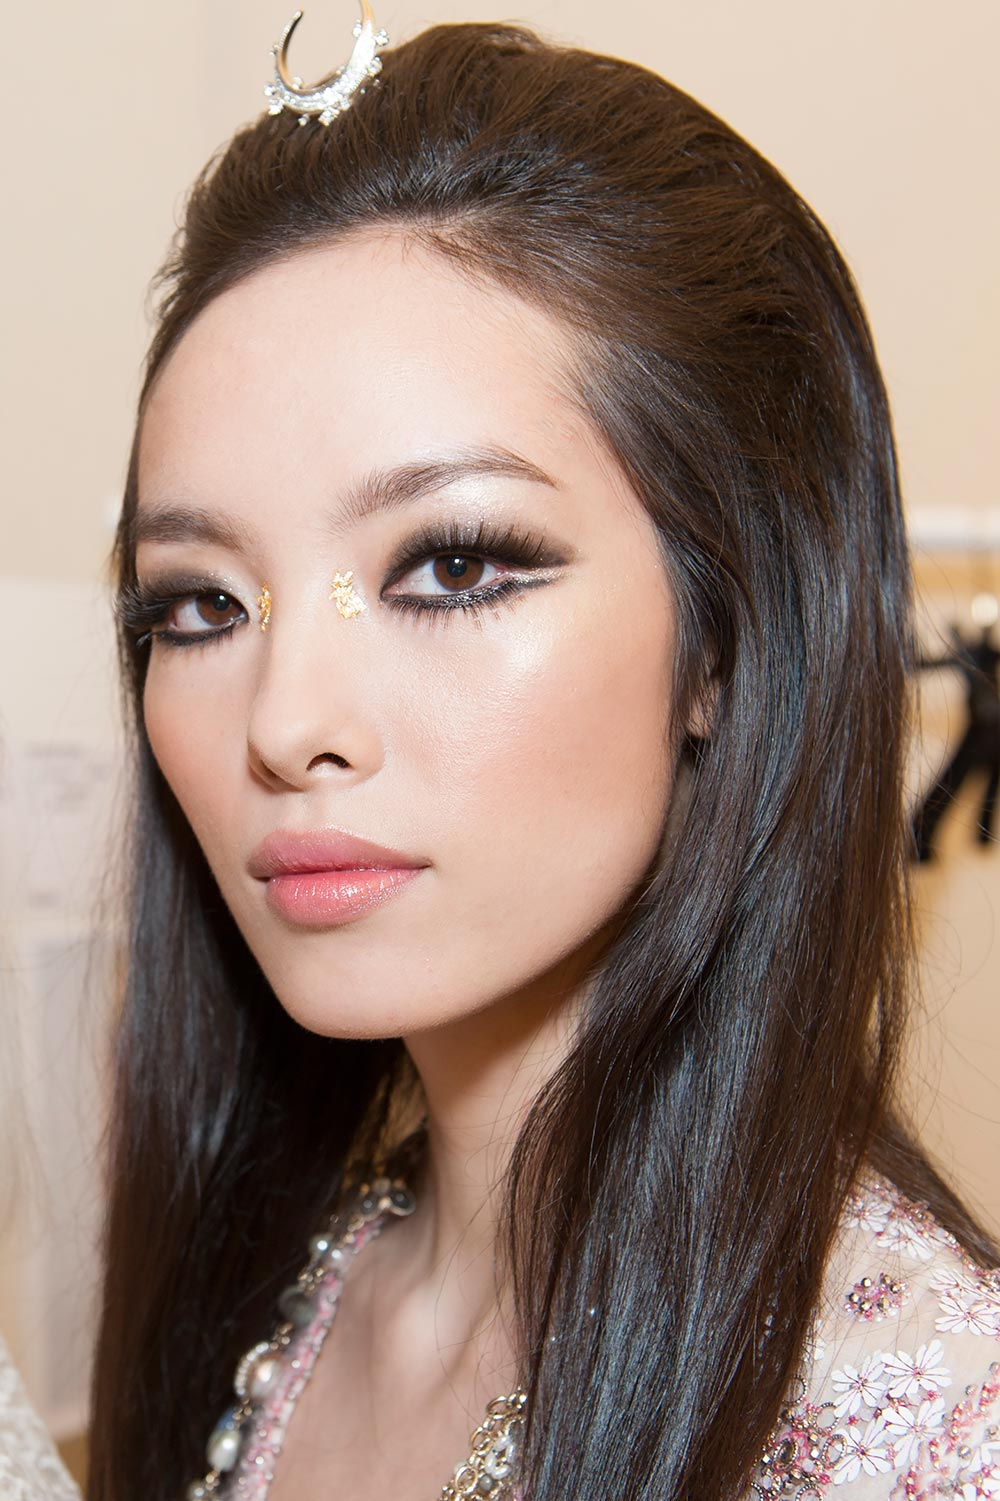 Runway Beauty: Chanel Cruise 2015 Hair & Makeup Look